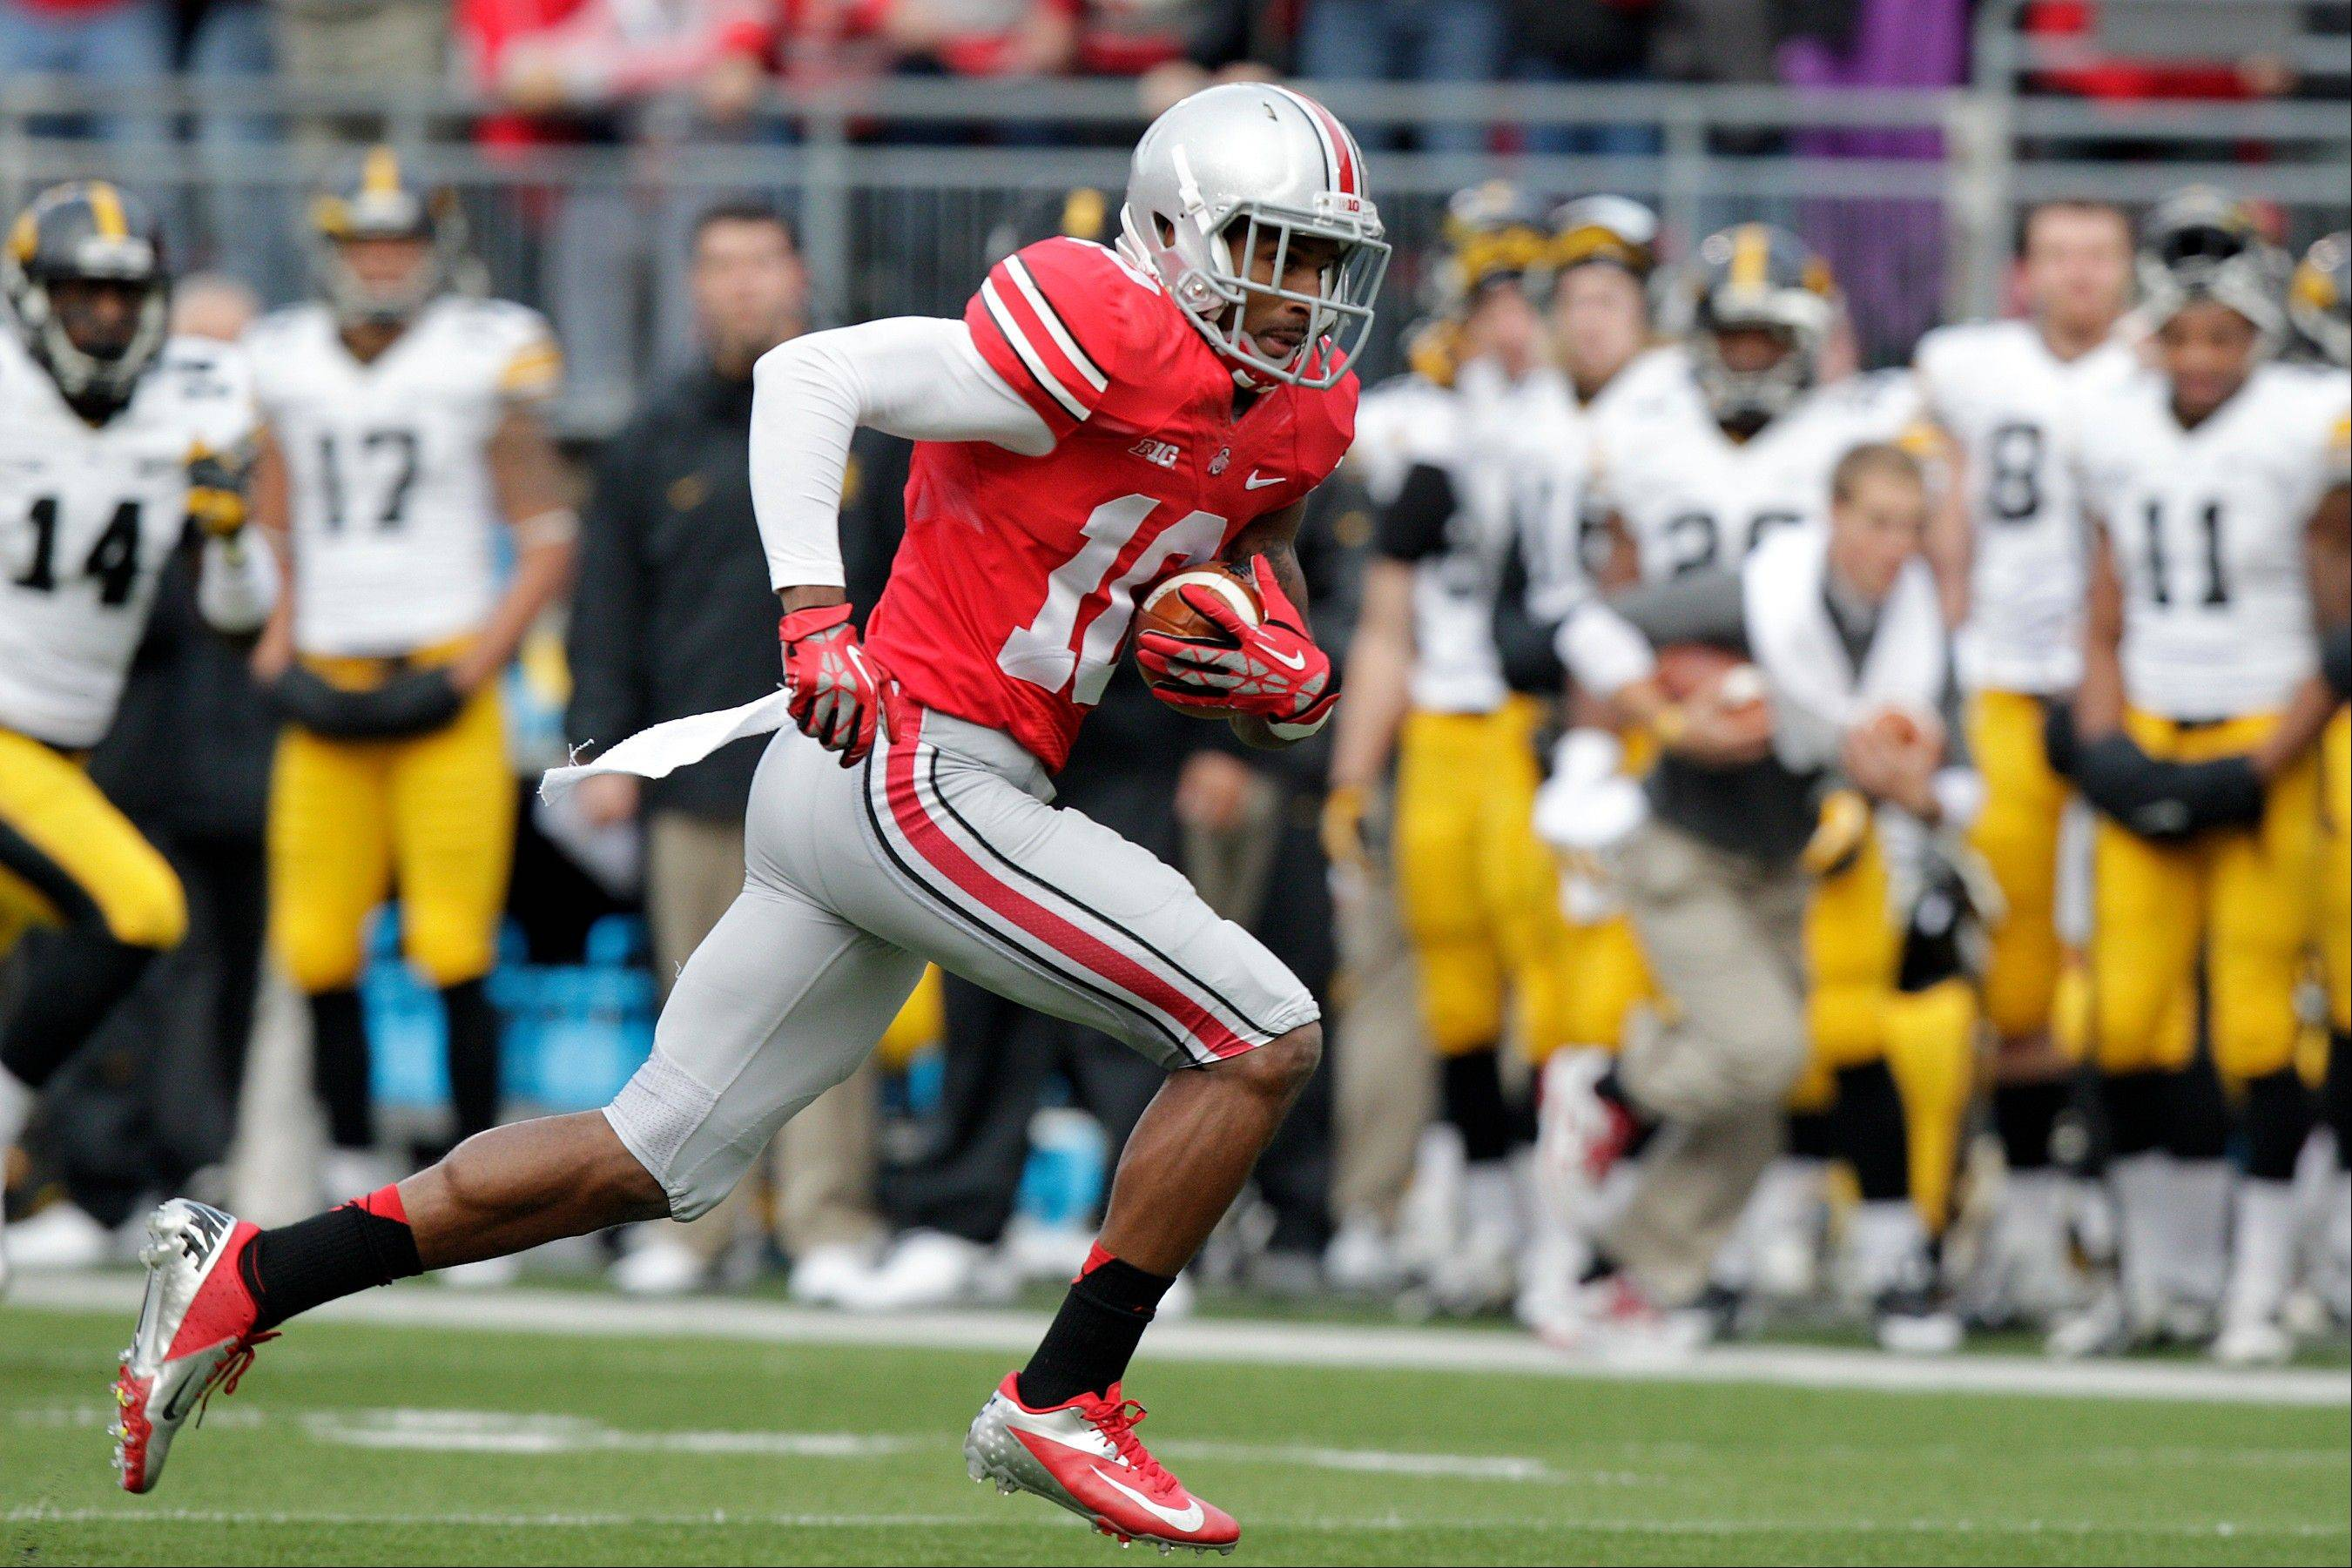 Ohio State wide receiver Corey Brown runs against Iowa during last Saturday's game in Columbus, Ohio. Brown gave stirring, adults-only halftime speech last week that lifted the Buckeyes to yet another victory.